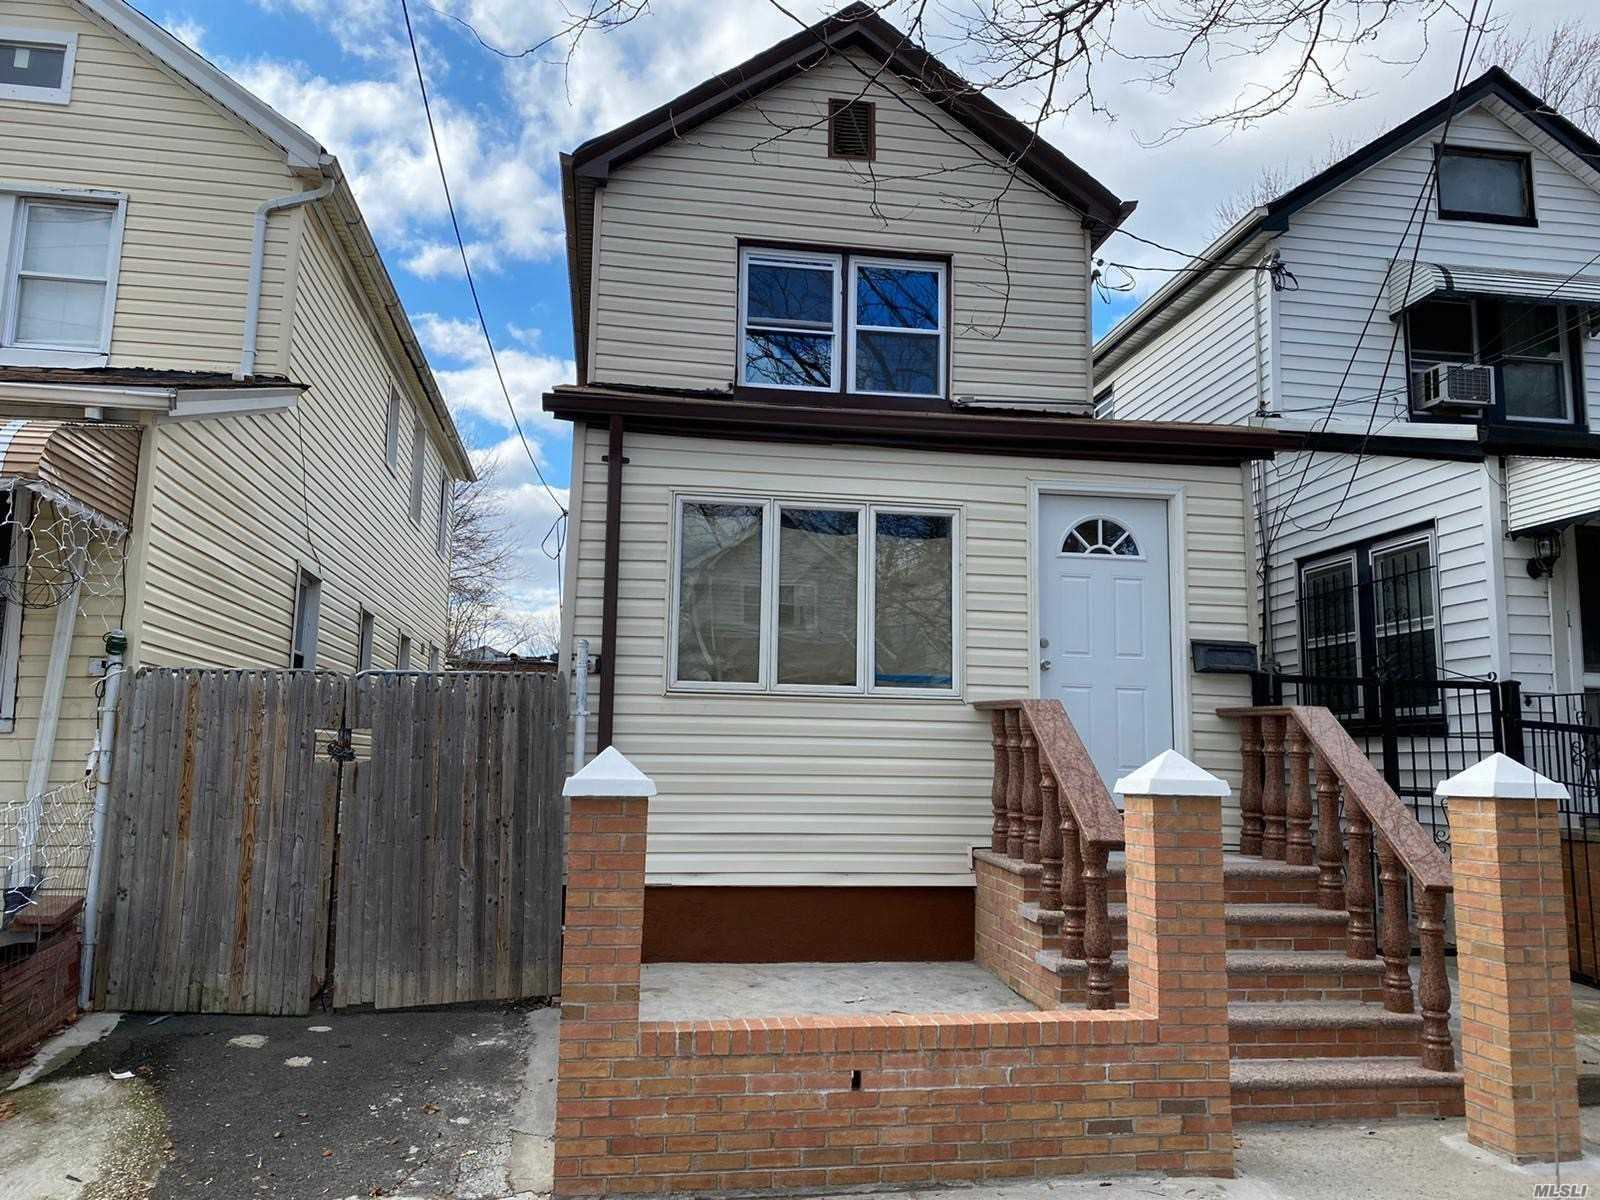 131-32 135th Place, S. Ozone Park, New York 11420, 3 Bedrooms Bedrooms, 9 Rooms Rooms,3 BathroomsBathrooms,Residential,For Sale,135th,3216427